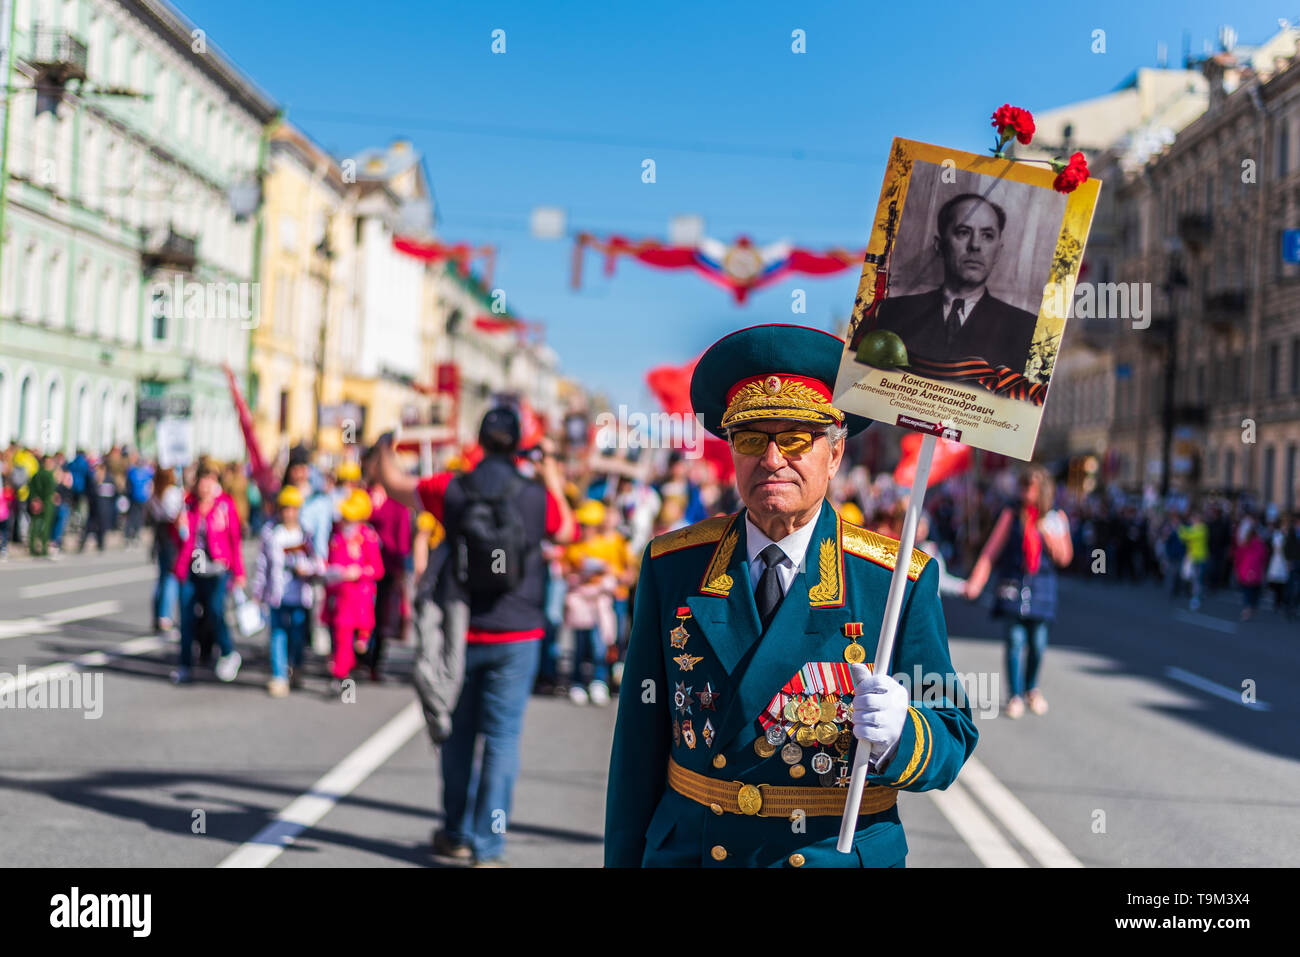 Immortal regiment - Veteran people carry banners with a photograph of their warrior ancestors, Victory Day, Nevsky Prospect, St. Petersburg, Russia - Stock Image